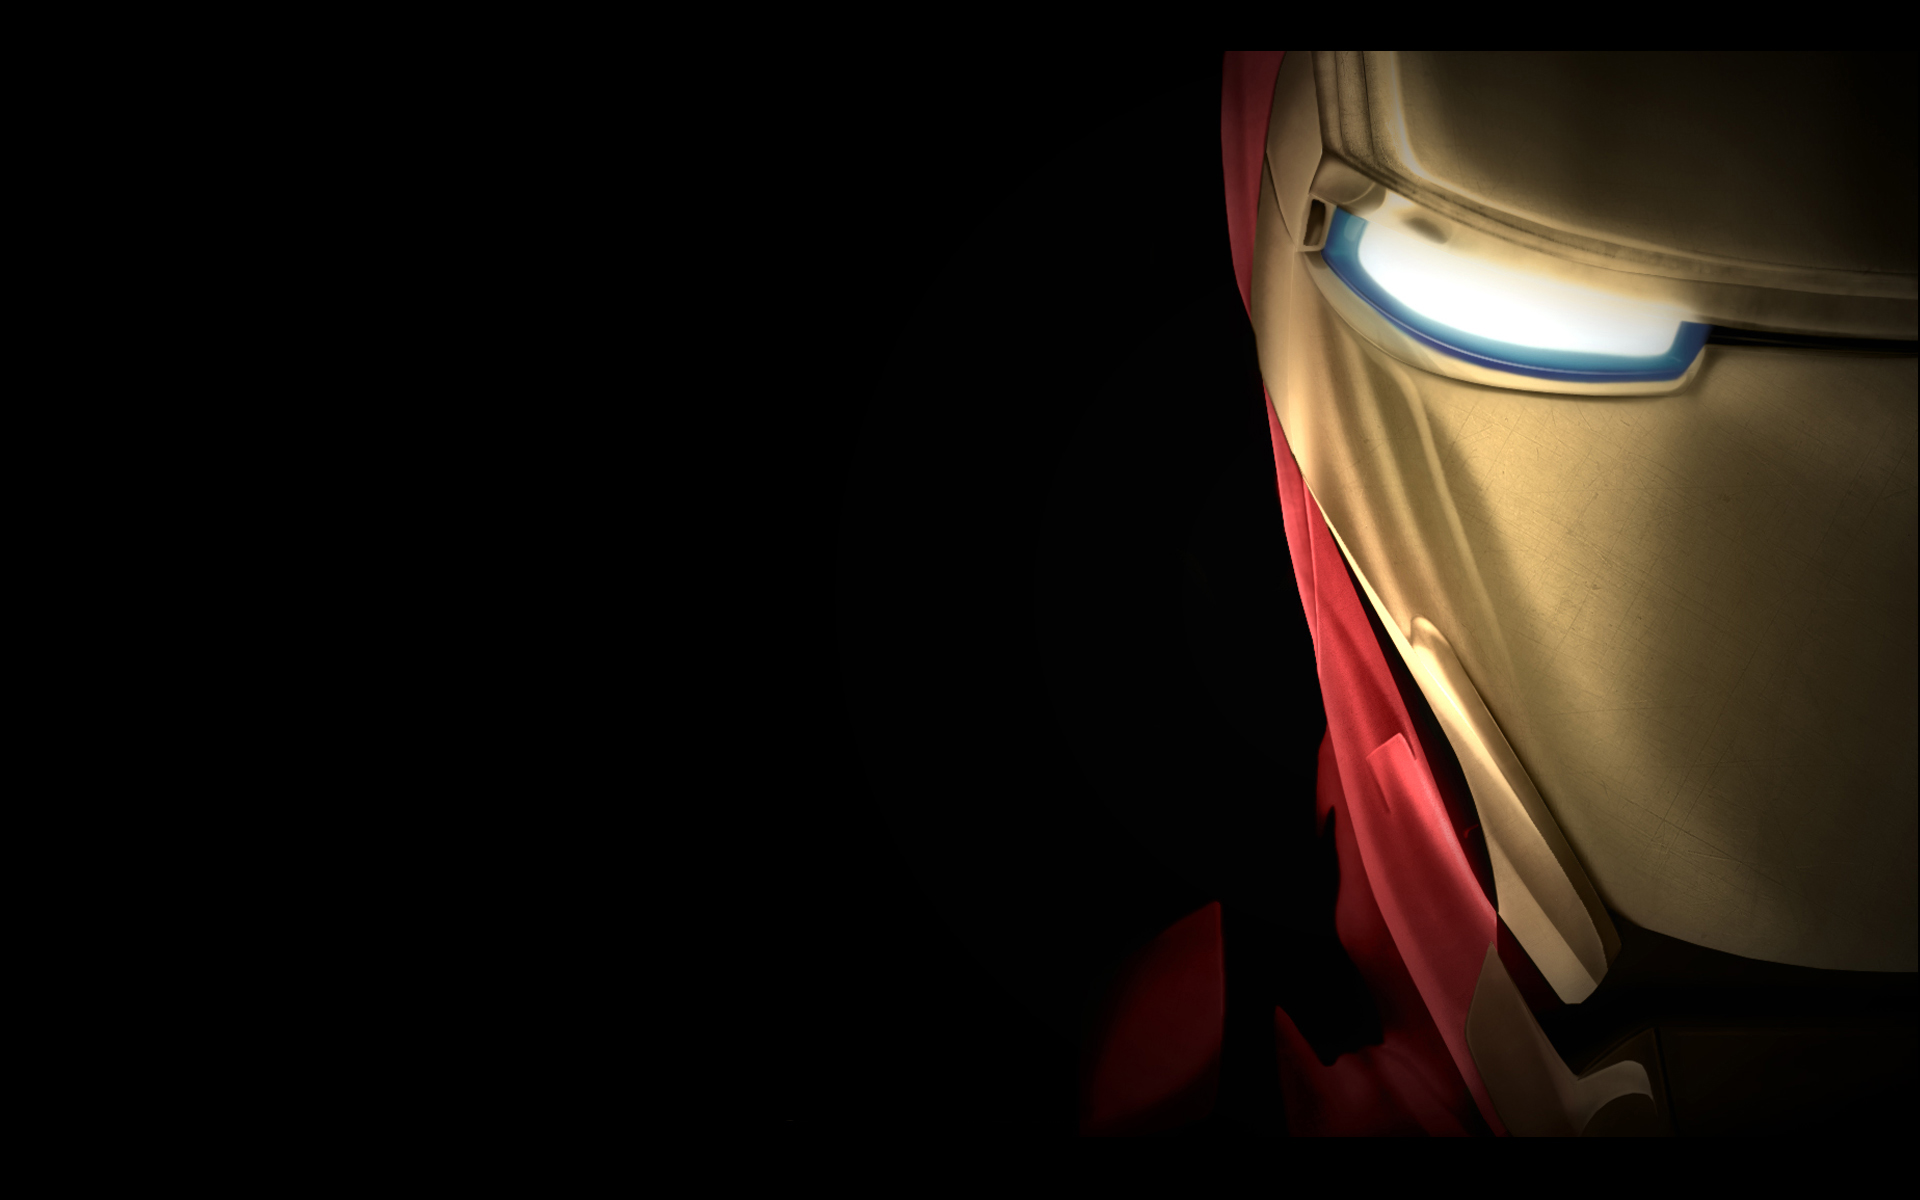 Iron man mask hd